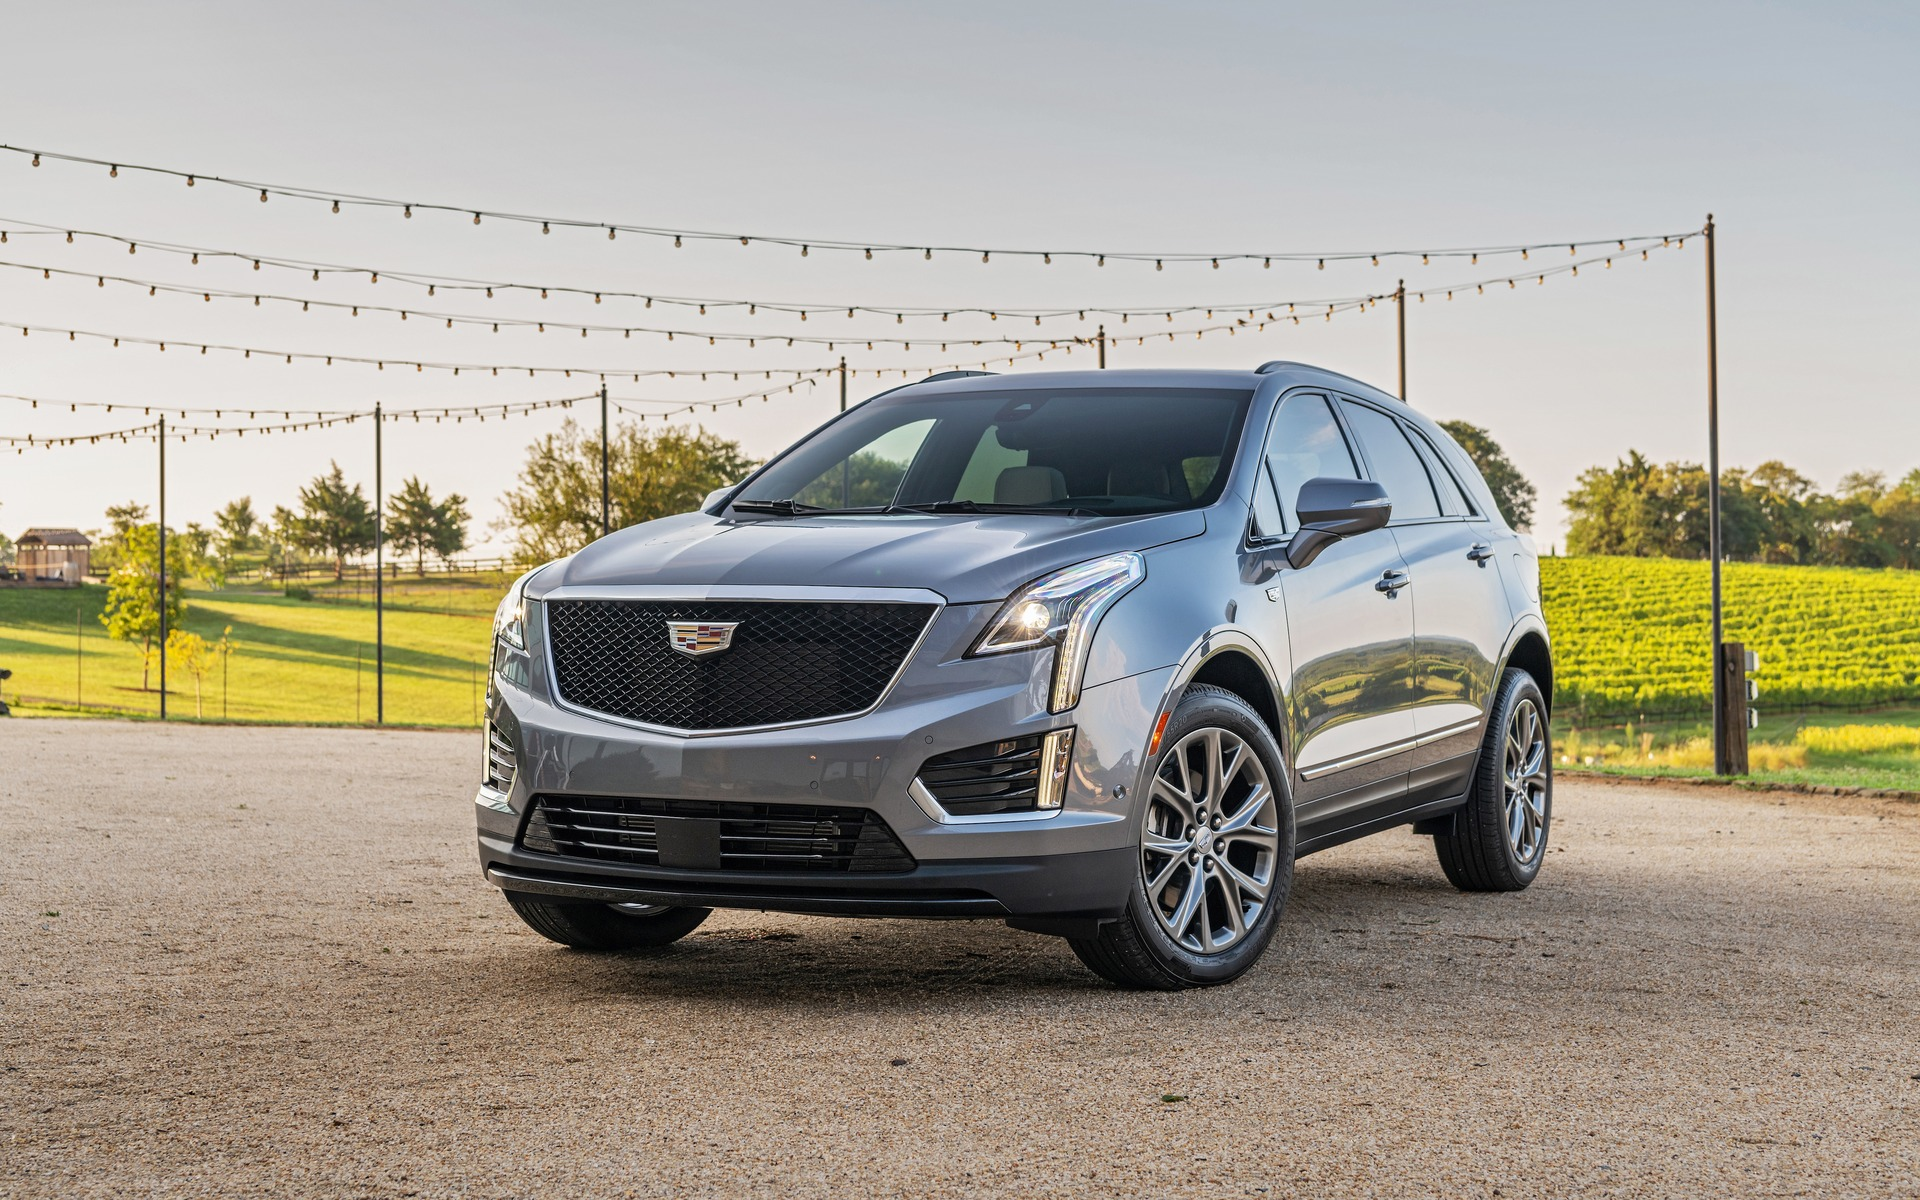 2020 Cadillac XT4 Changes, Hybrid, Price >> Refreshed 2020 Cadillac Xt5 Gets A New Turbo Engine The